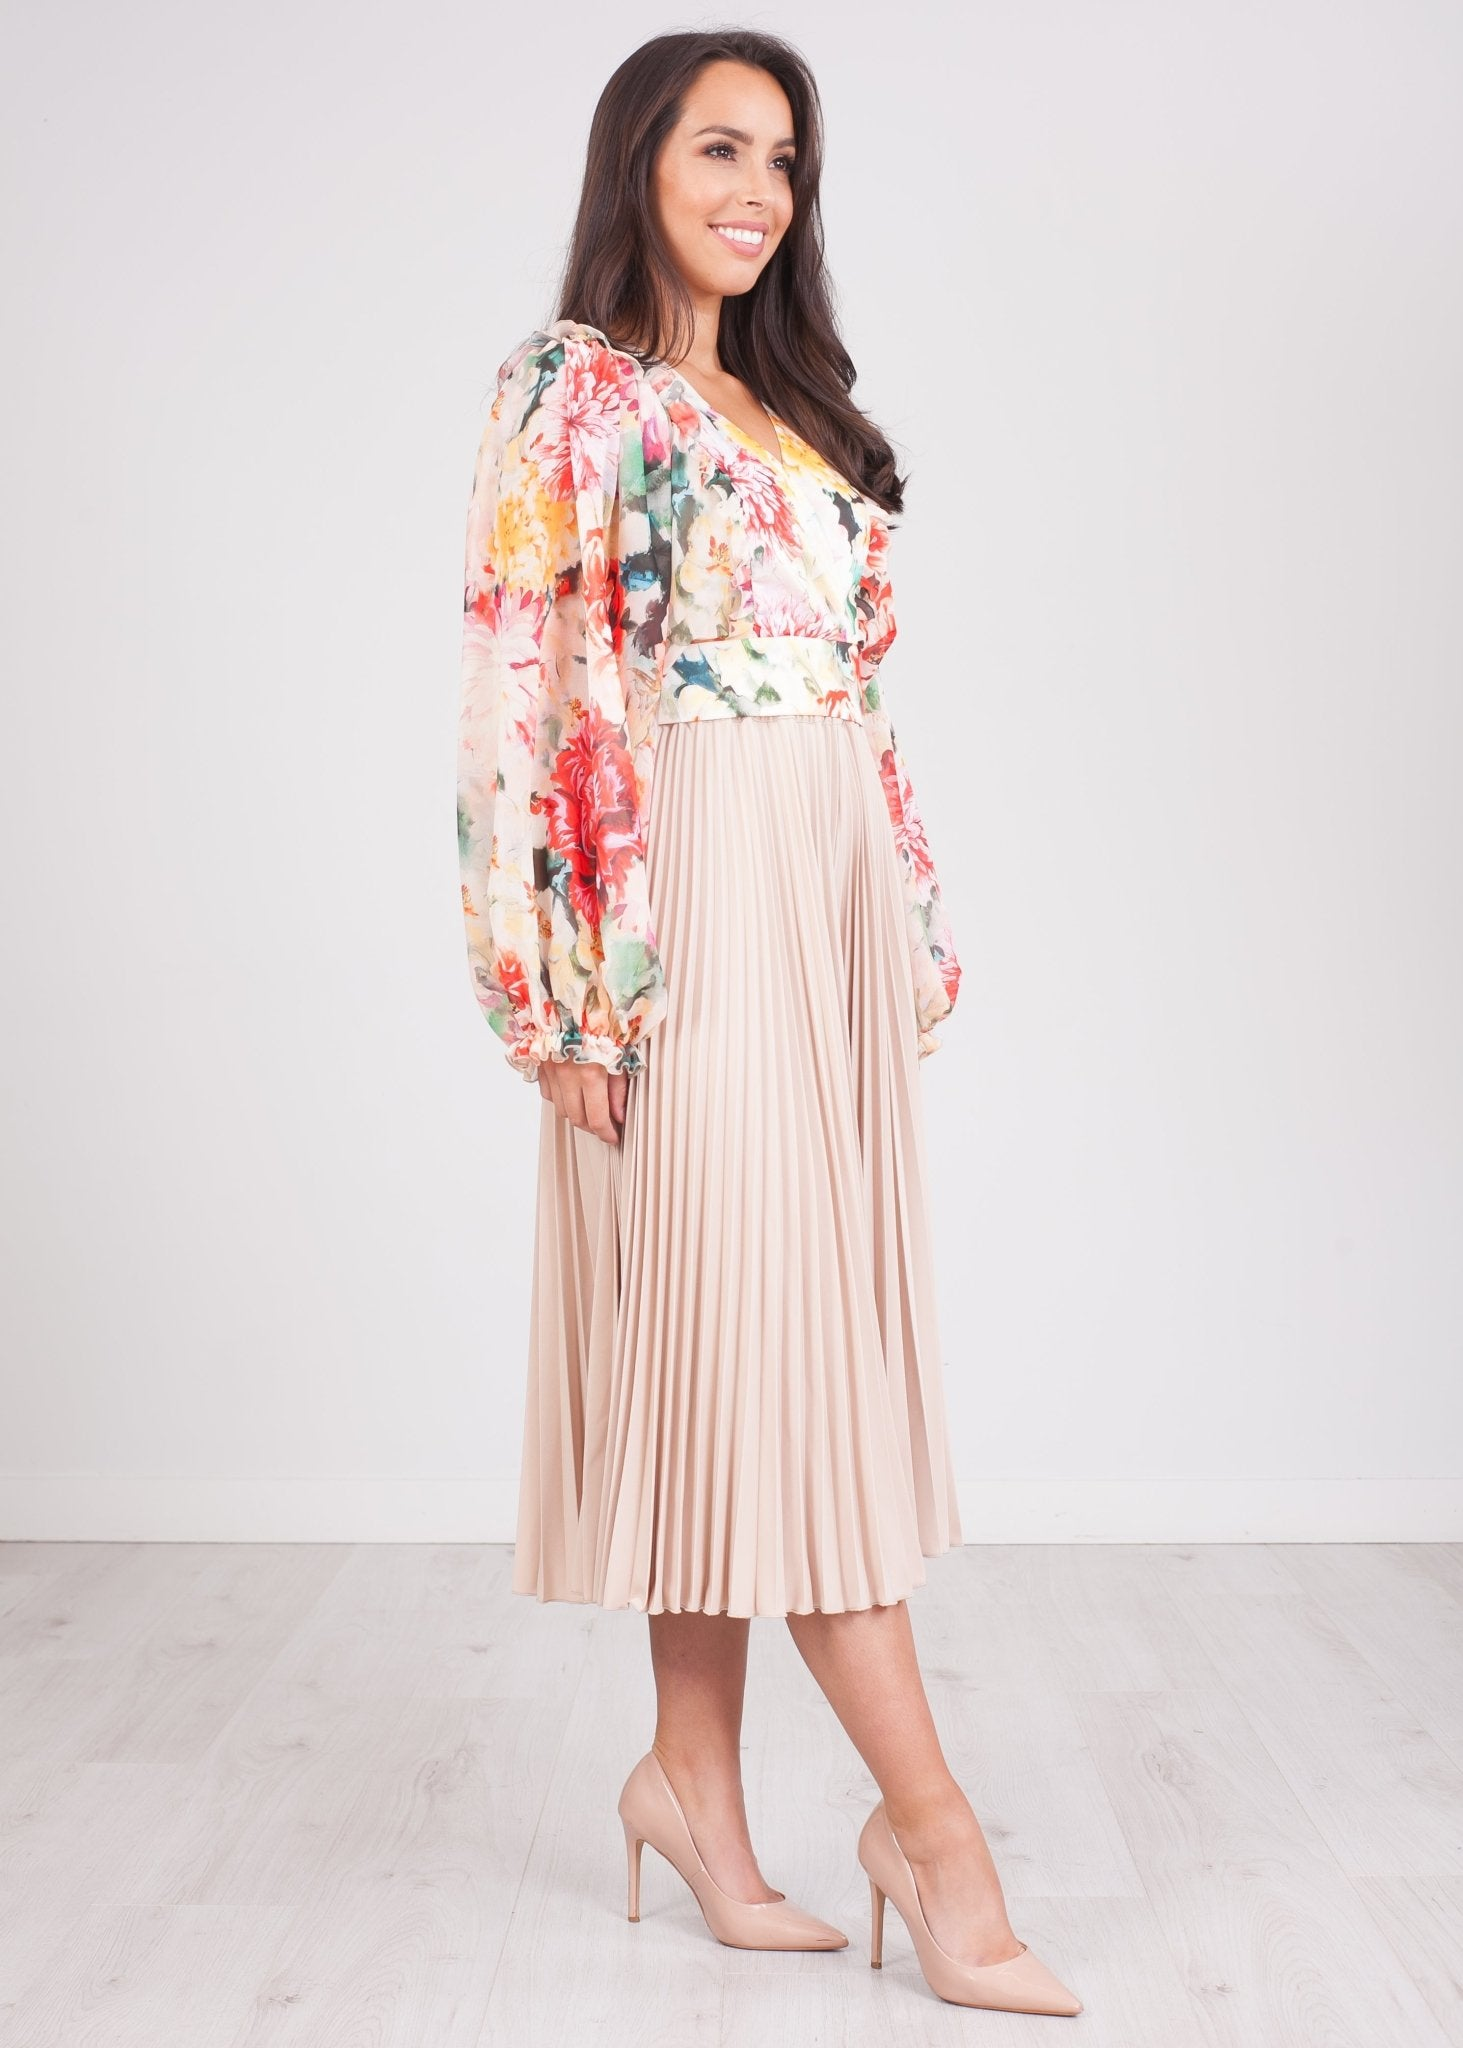 Alana Floral Puff Sleeve Top - The Walk in Wardrobe